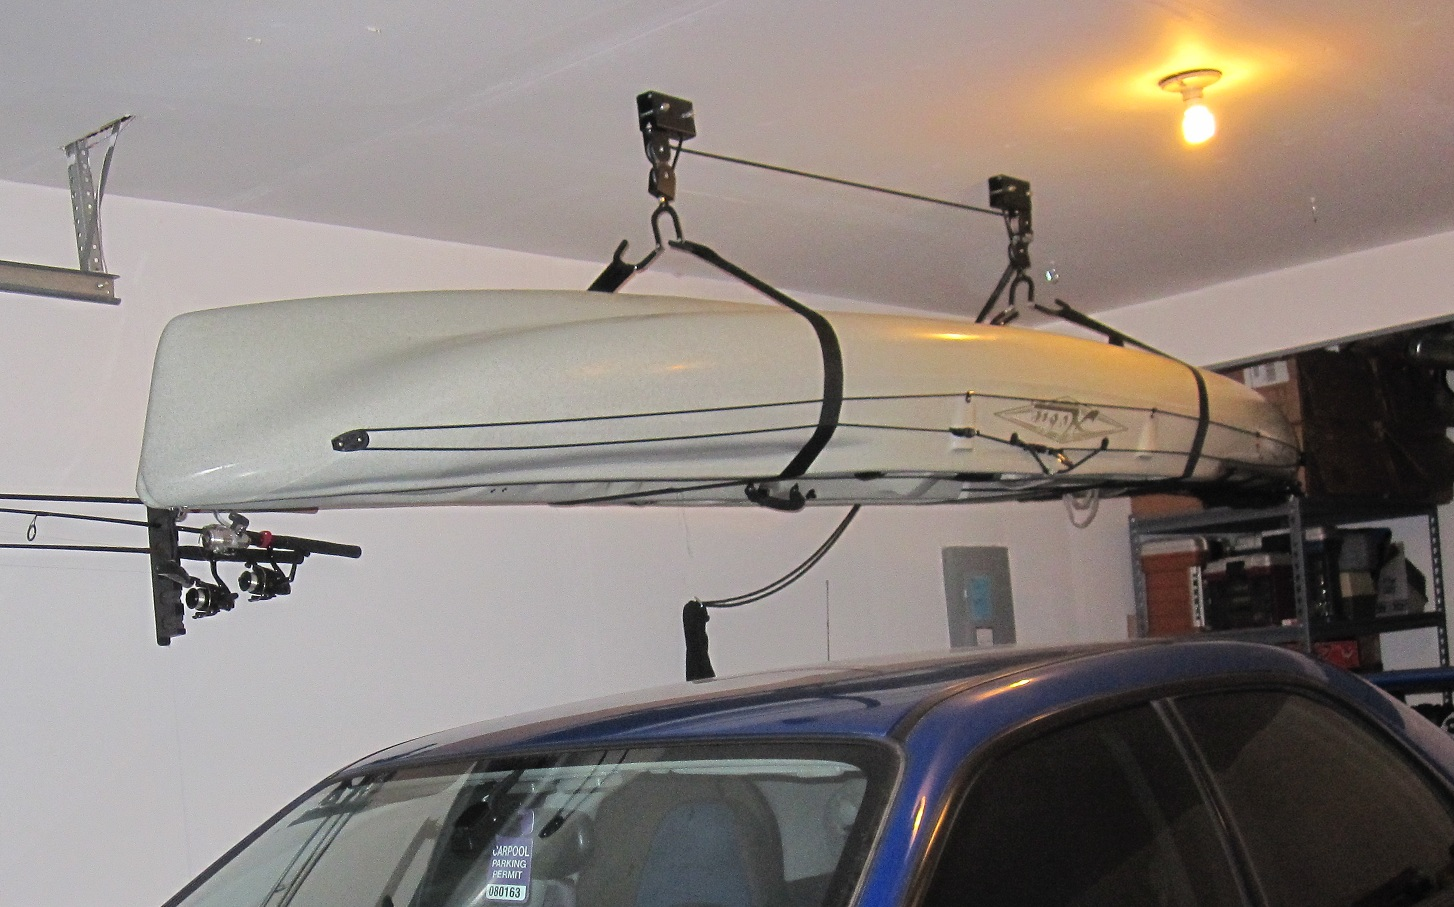 Garage Kayak Storage on hot tub in garage, shop in garage, helicopter in garage, atv in garage, surfing in garage, boxing in garage, walk in garage, love in garage, limo in garage, car in garage, parking in garage, archery in garage, plane in garage, kayak lifts for garage, wrestling in garage, run in garage, kayak holder garage, pulley system for garage, shooting in garage, boat in garage,